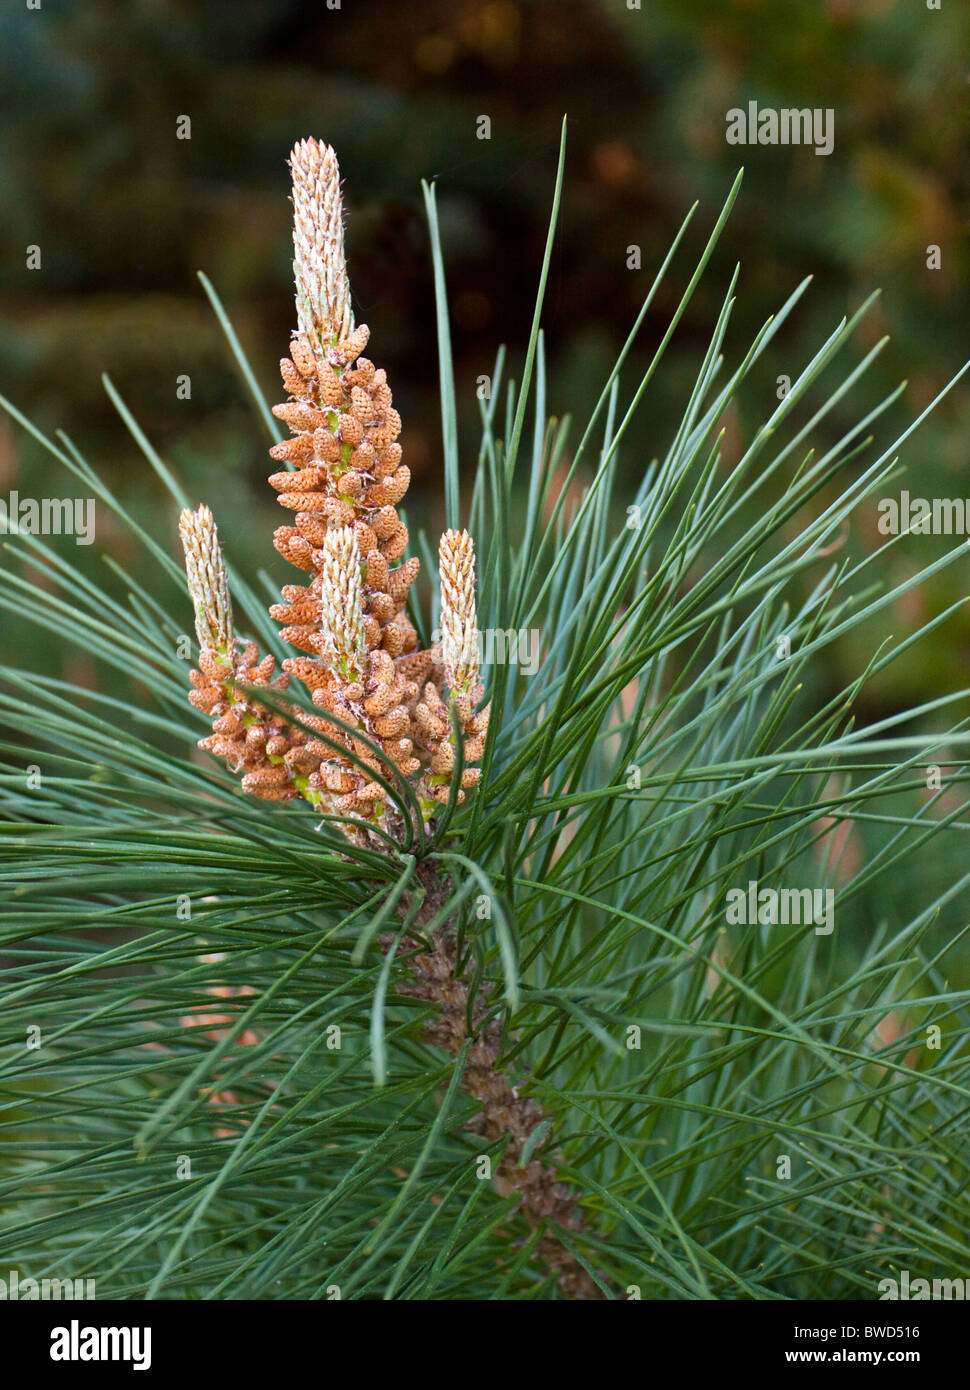 A close up of a Conifer seed - Stock Image